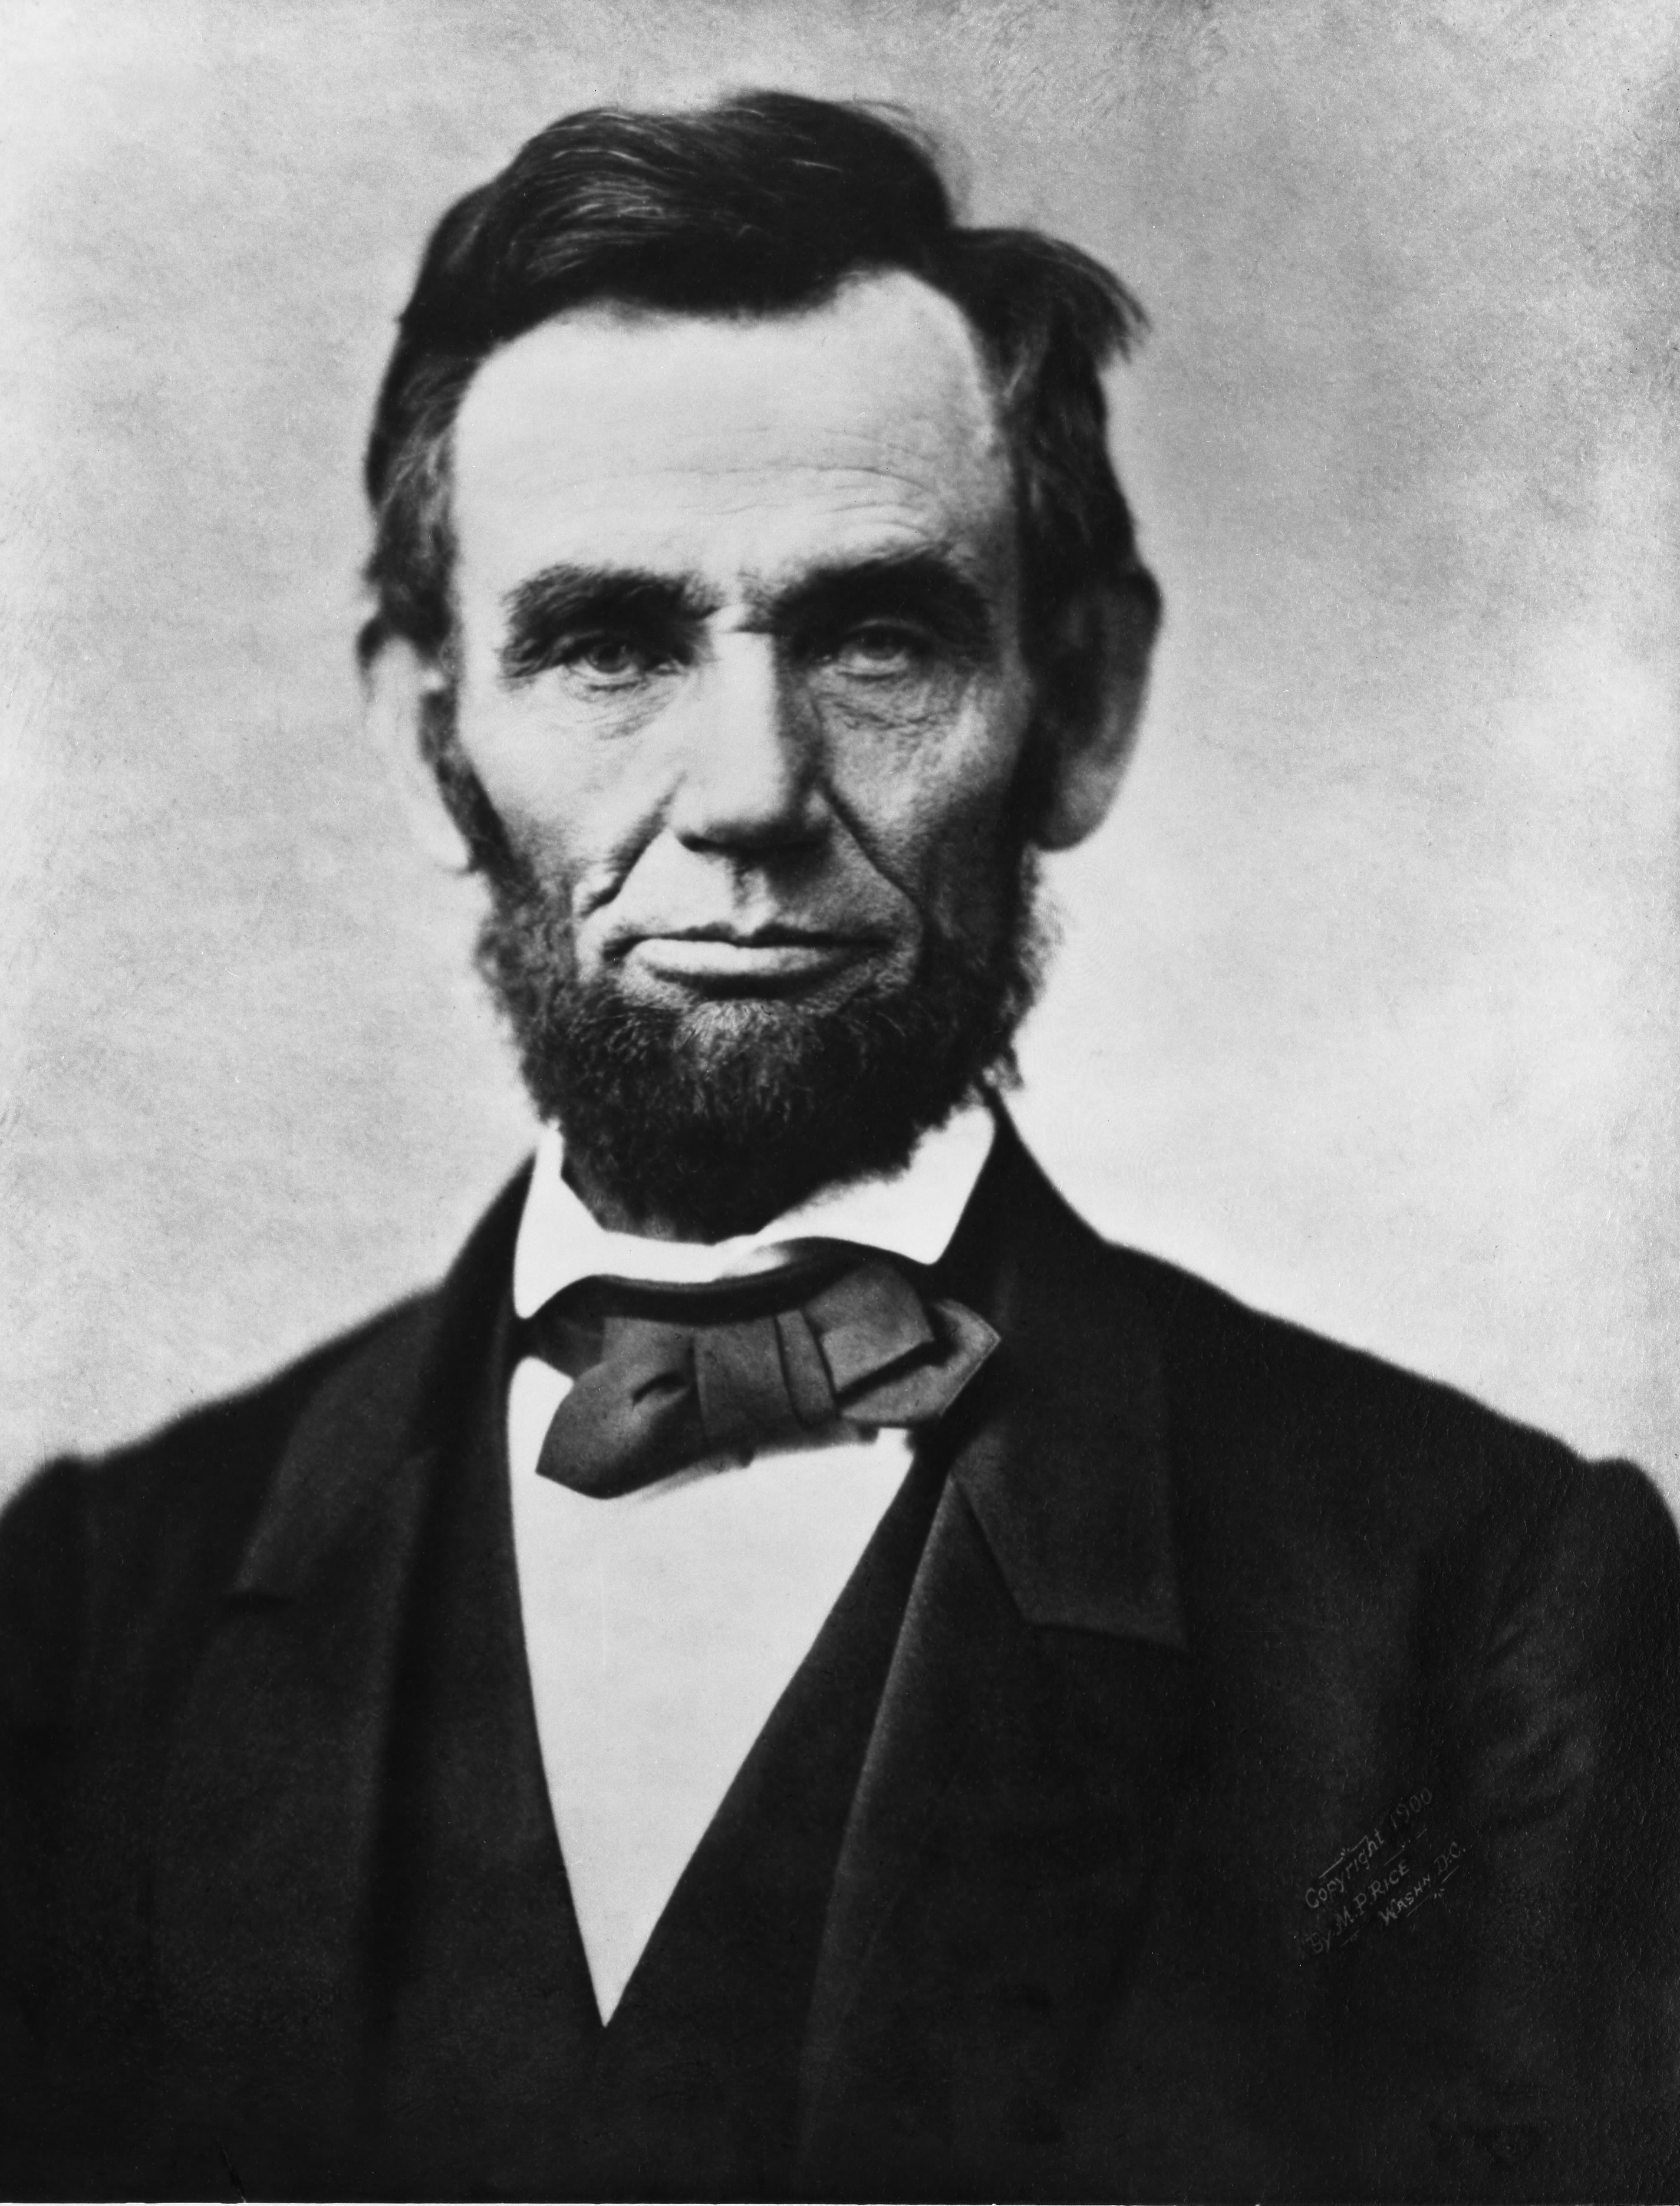 Description Abraham Lincoln head on shoulders photo portrait.jpg